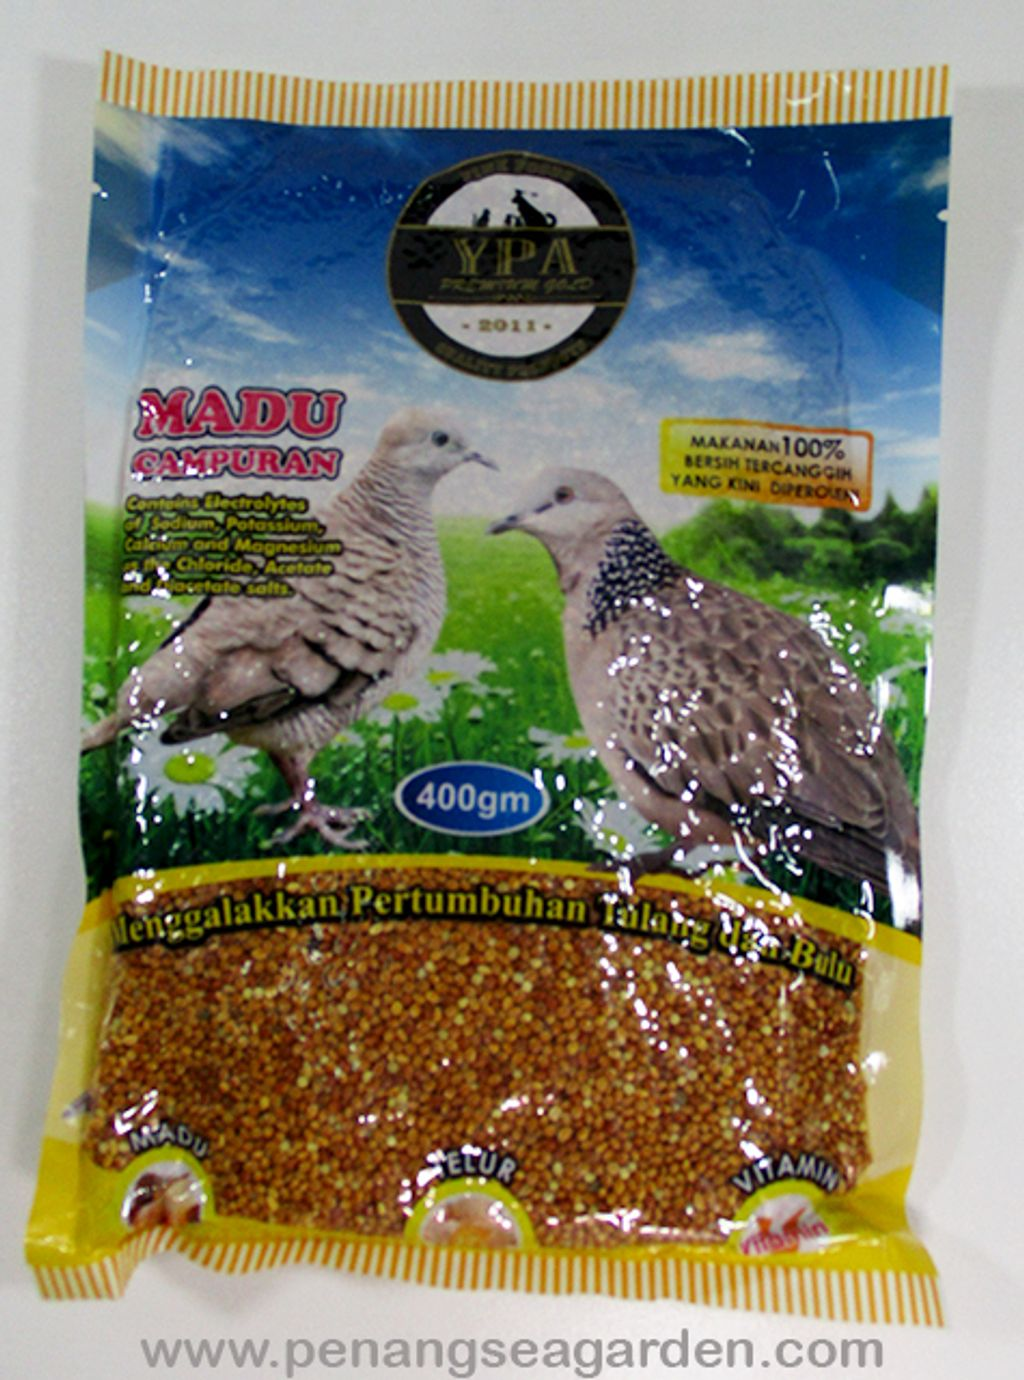 YPA Millet Red 400g RM4.50 - 1w.jpg